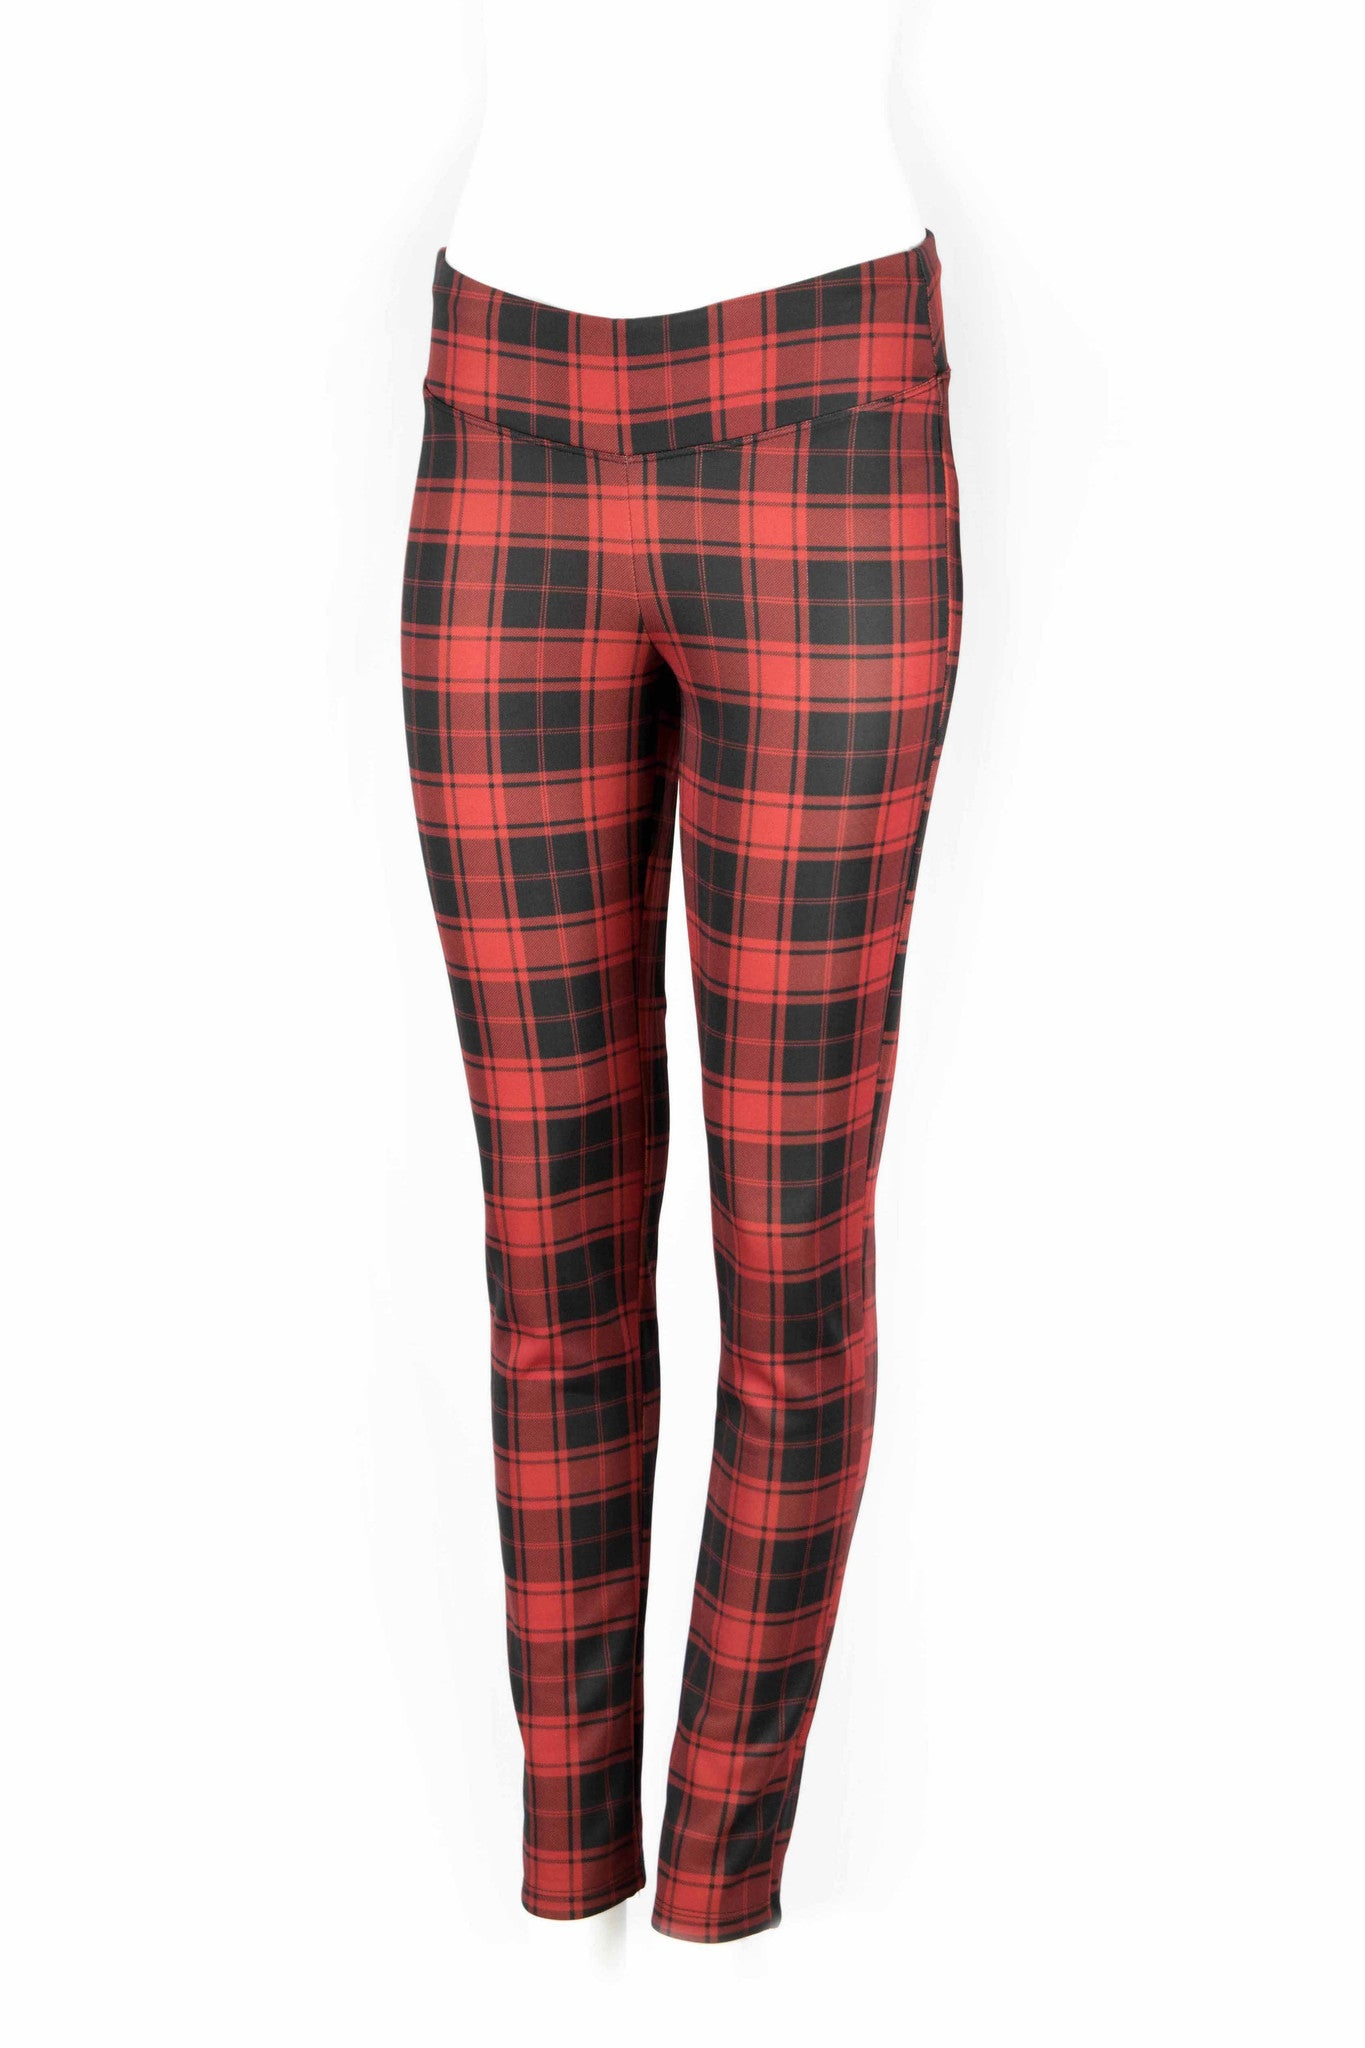 Aubrey Plaid Fitted Pants - ANA MARIA KIM  - 3